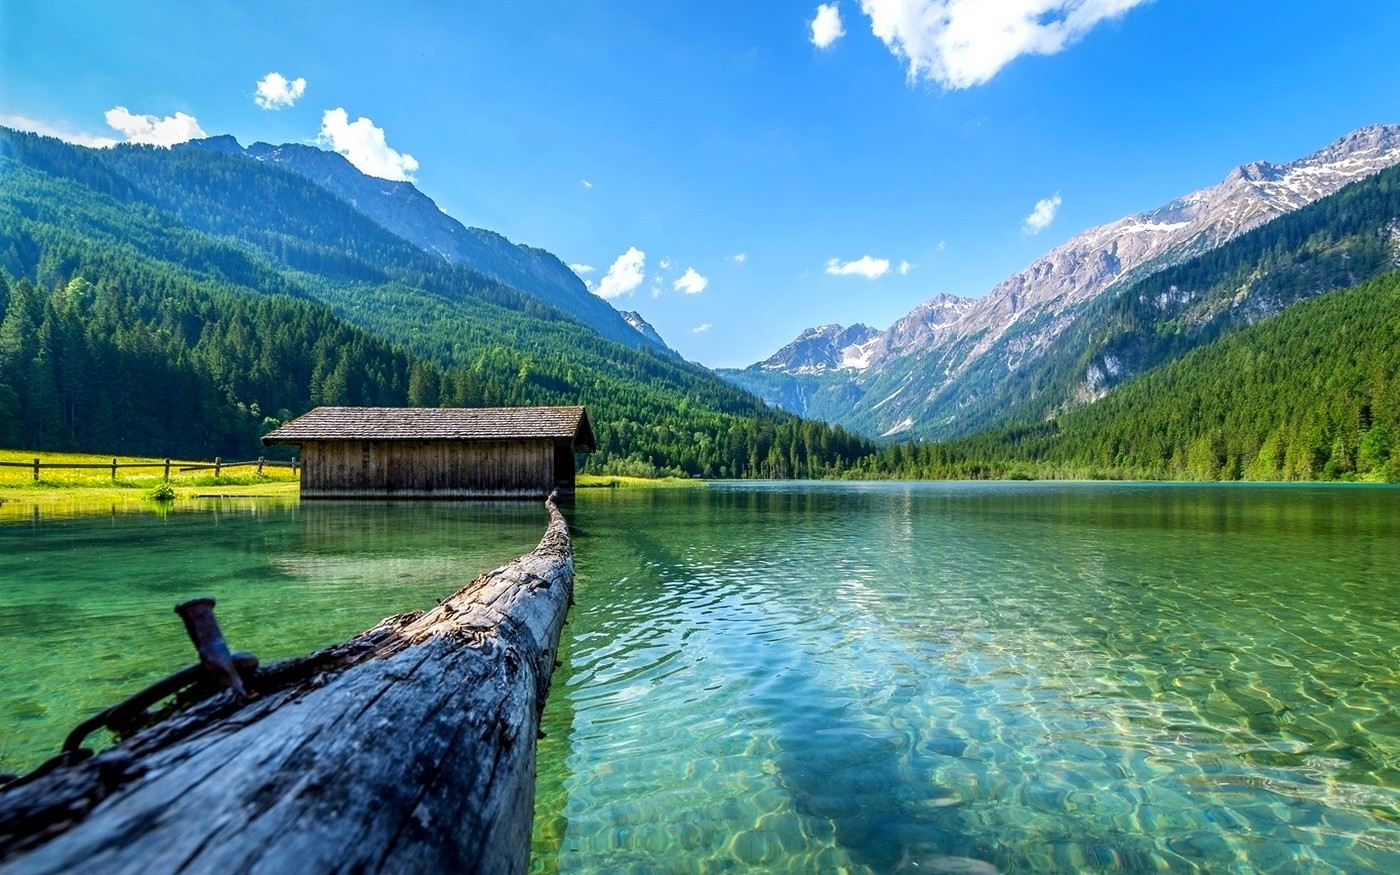 Best Wallpapers Hd Pro Lake Nature Boathouses Mountain Landscape Log Summer